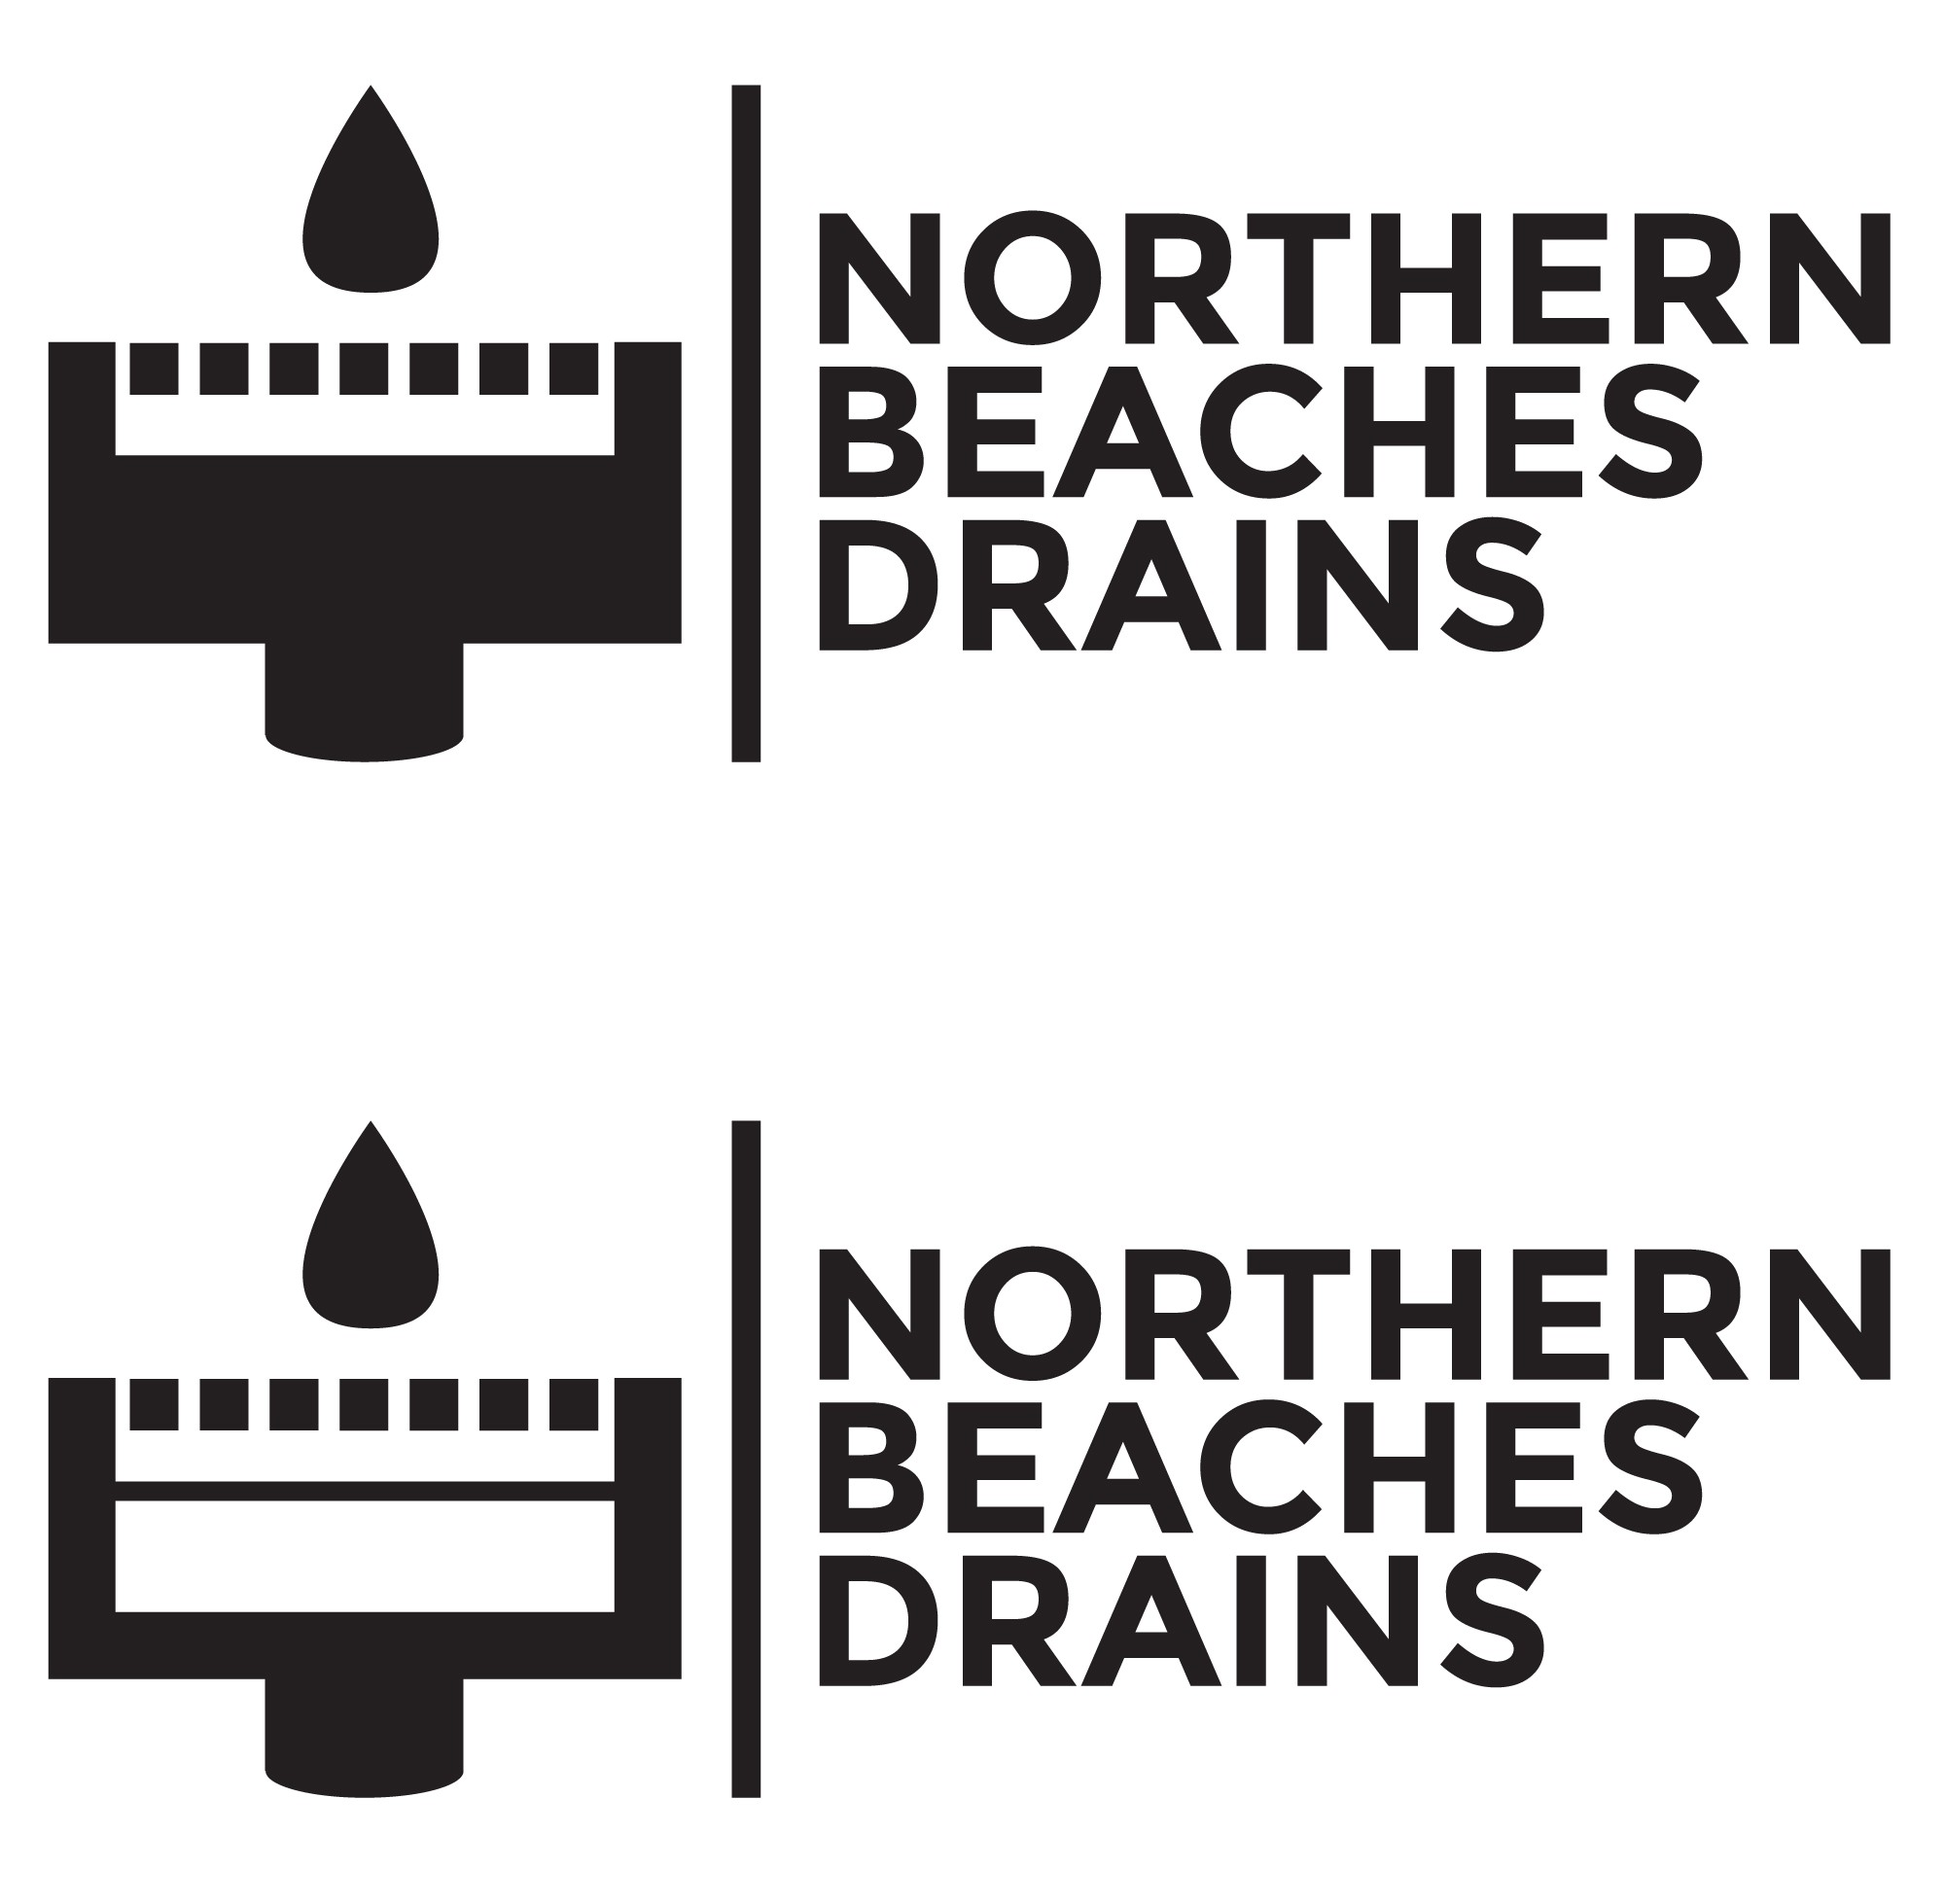 Northern Beaches Drains needs a fresh & outgoing Logo to get us noticed and in business!